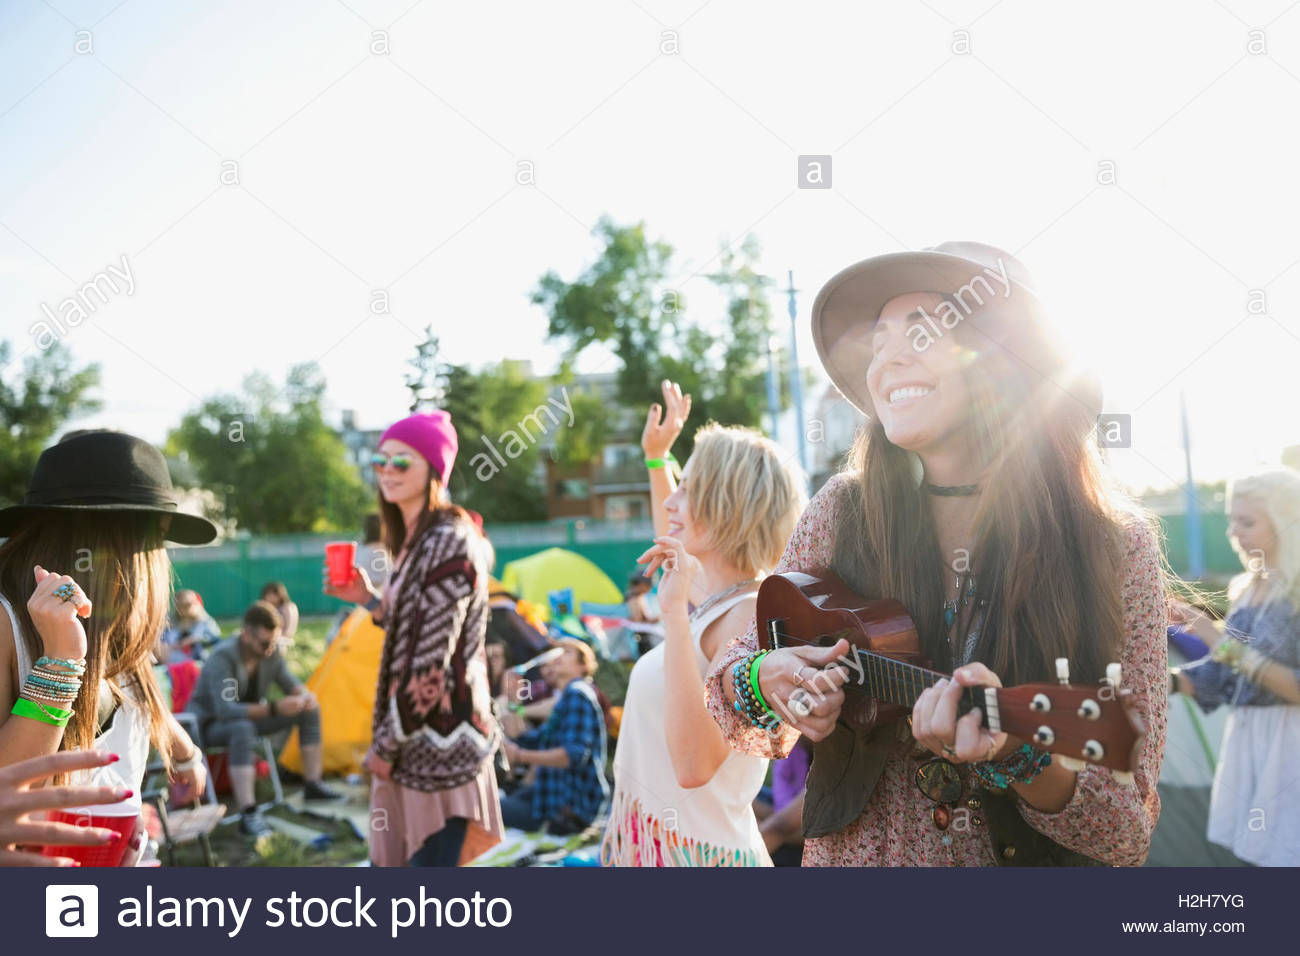 Smiling young woman playing ukulele at summer music festival campsite - Stock Image